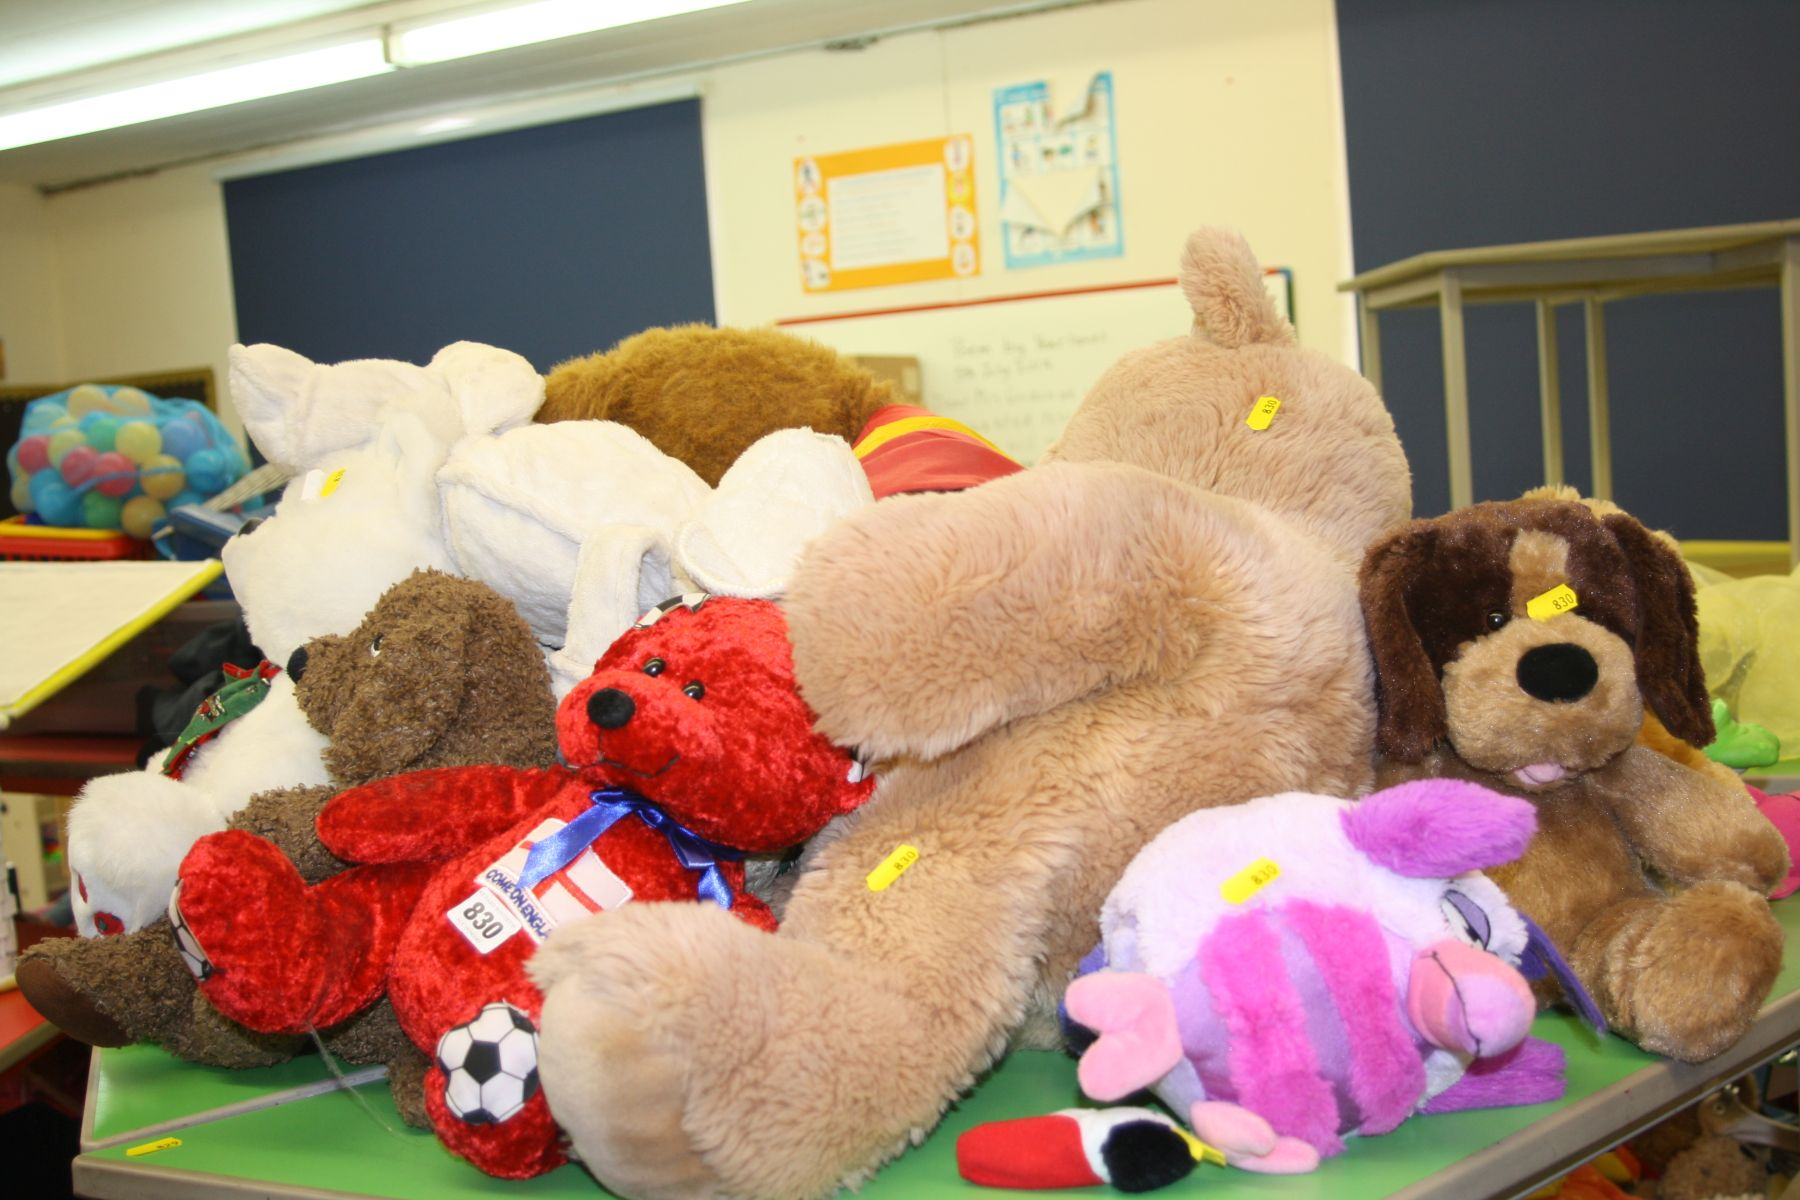 A QUANTITY OF TEDDY BEARS AND TOYS, including large Polydron, shop and kitchen toys, etc